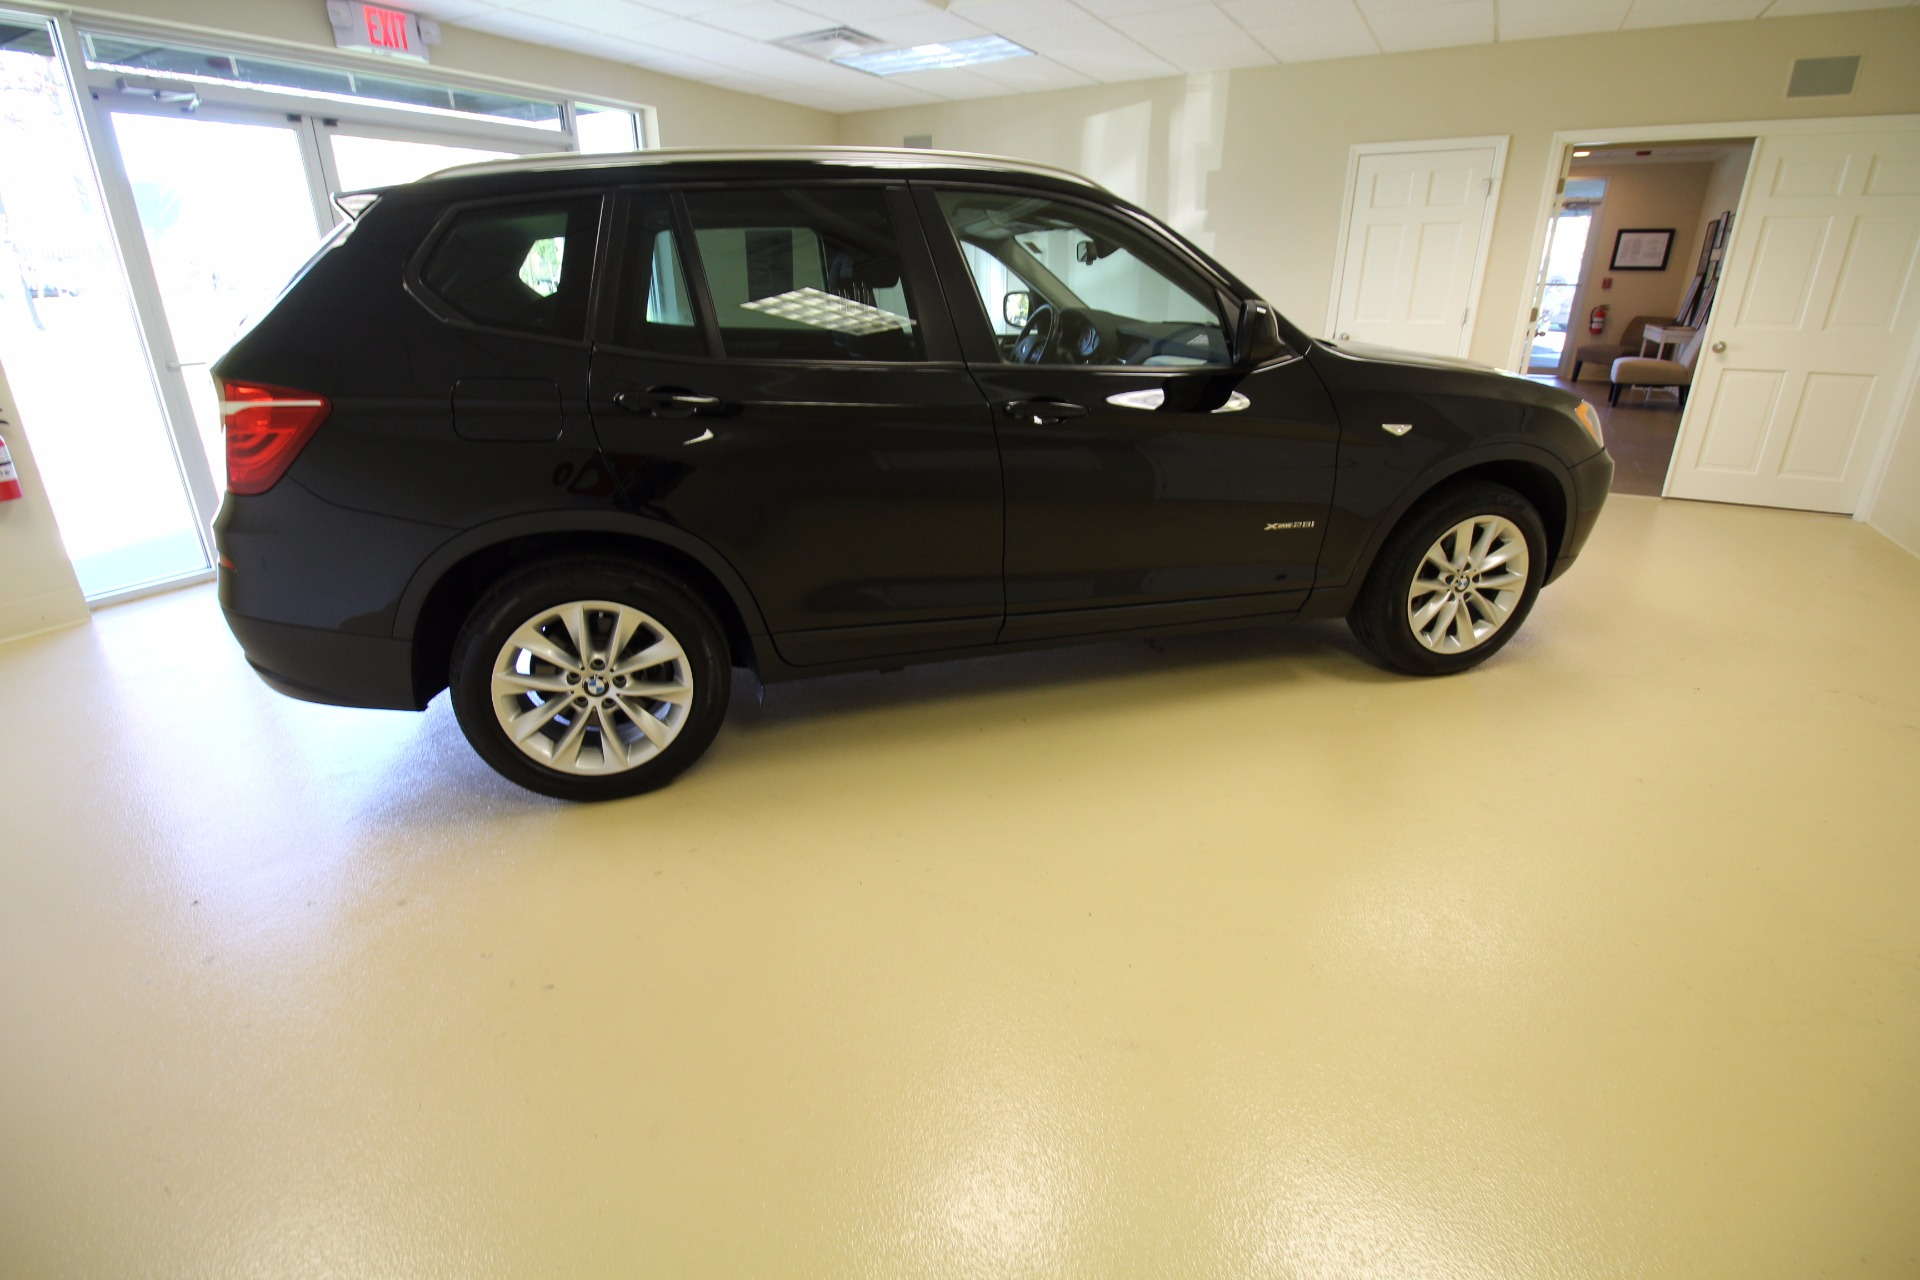 2014 bmw x3 xdrive28i stock 16292 for sale near albany ny ny bmw dealer for sale in albany. Black Bedroom Furniture Sets. Home Design Ideas